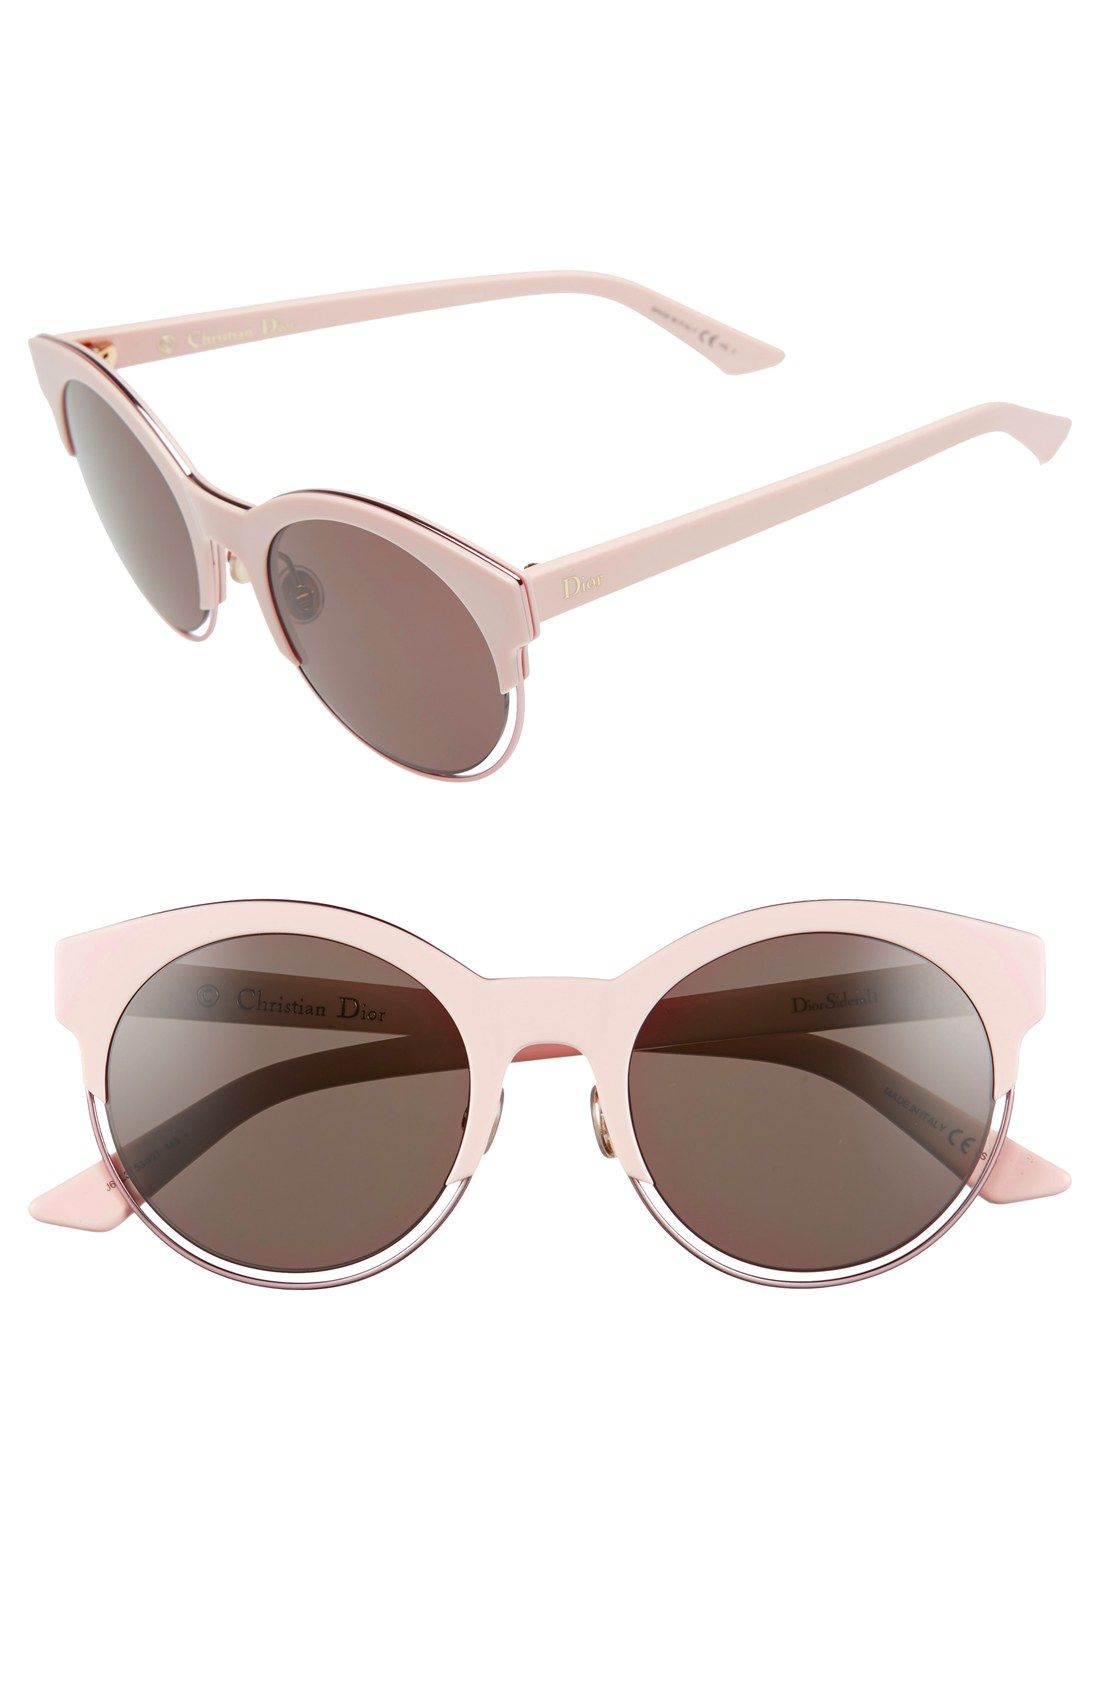 b11808acb20ef2 Dior Sideral 1 53mm Sunglasses (Regular Retail Price   430.00)   Nordstrom Lunettes  De